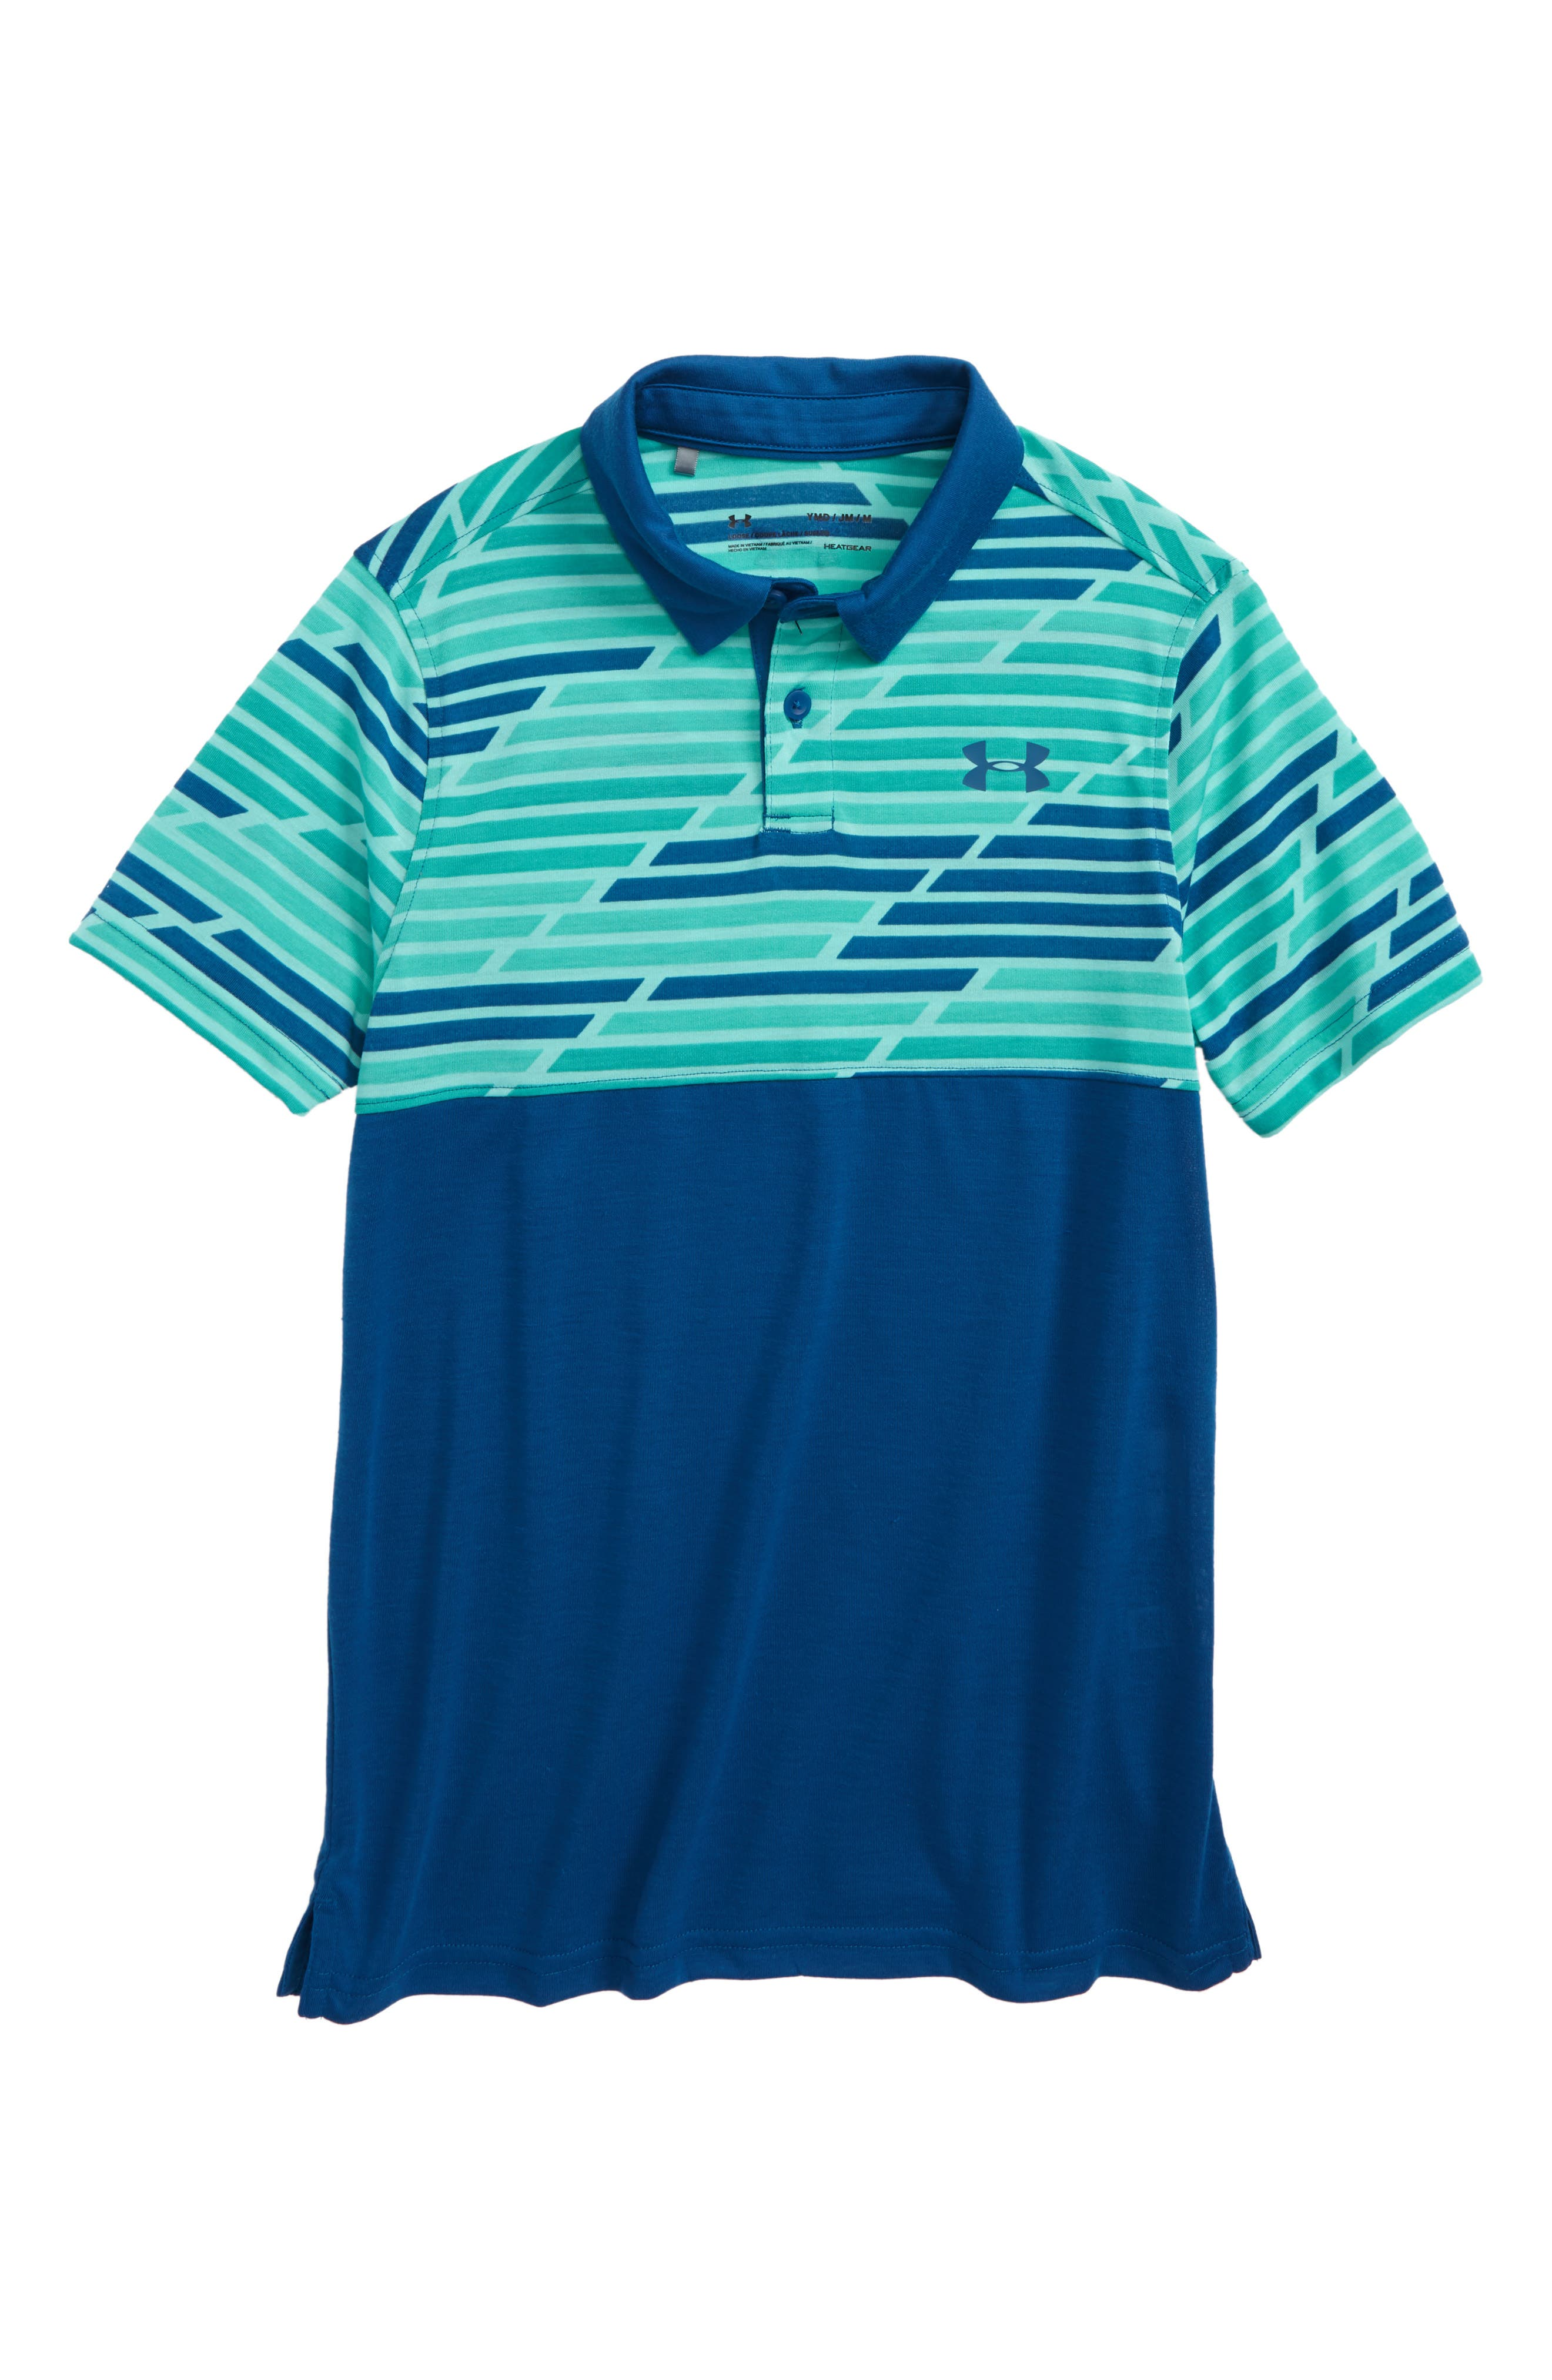 Threadborne HeatGear<sup>®</sup> Polo,                             Main thumbnail 1, color,                             Teal Punch/ Moroccan Blue